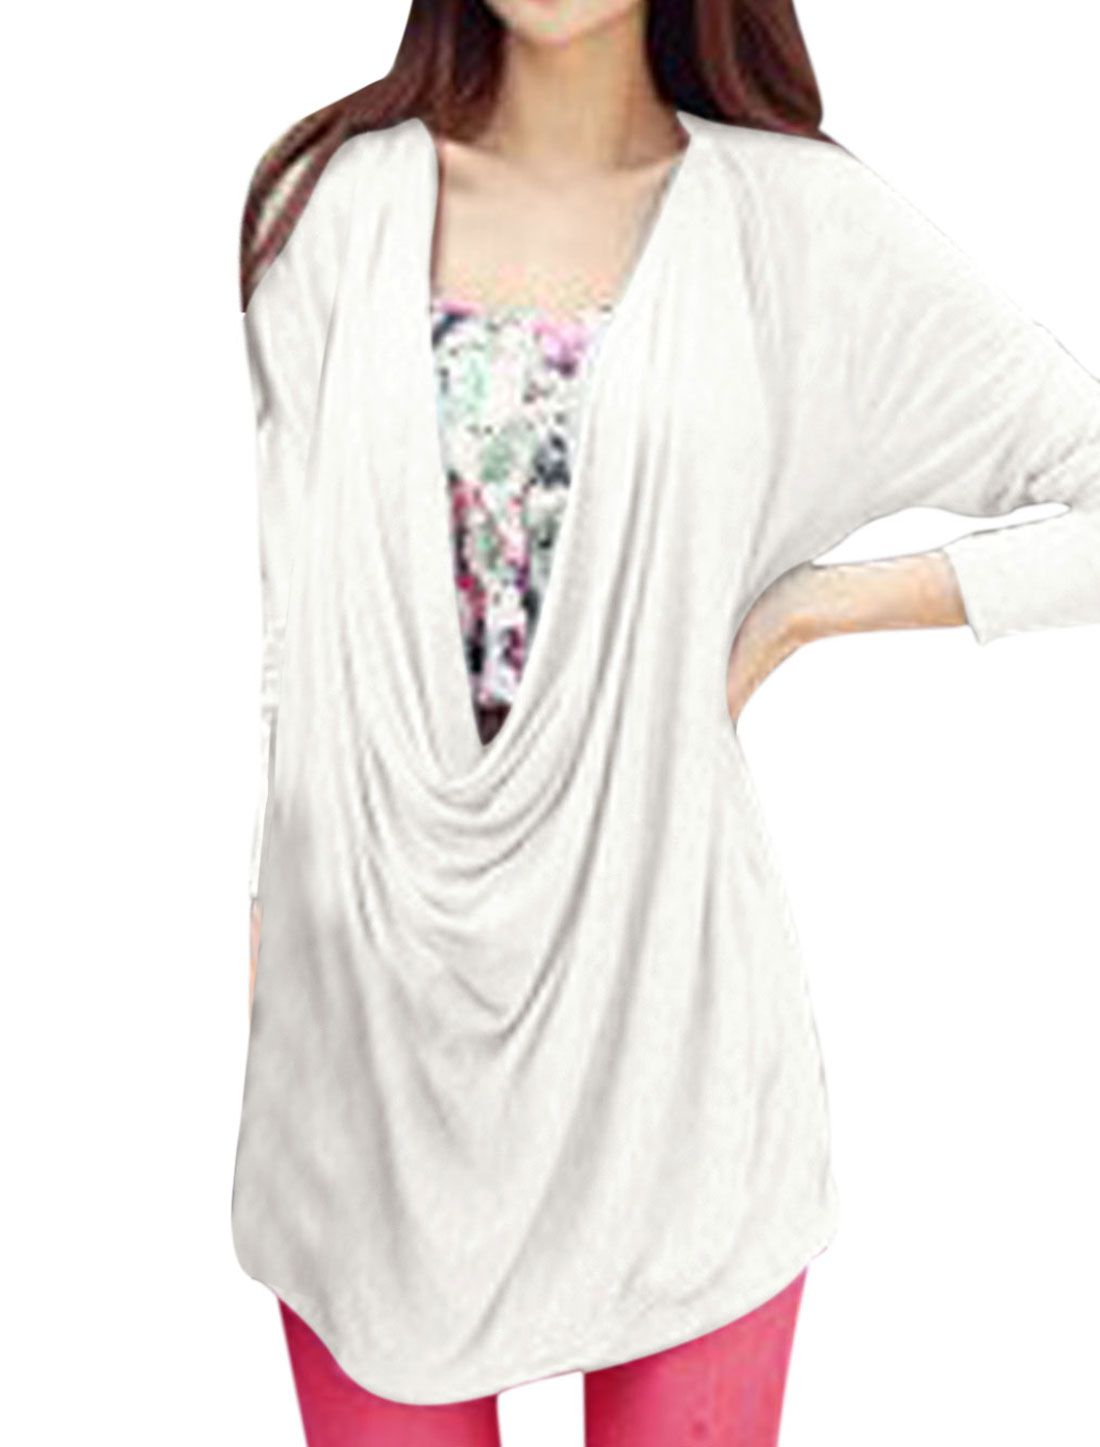 Lady Front Opening Fashionable Cozy Fit Two Way Top White S